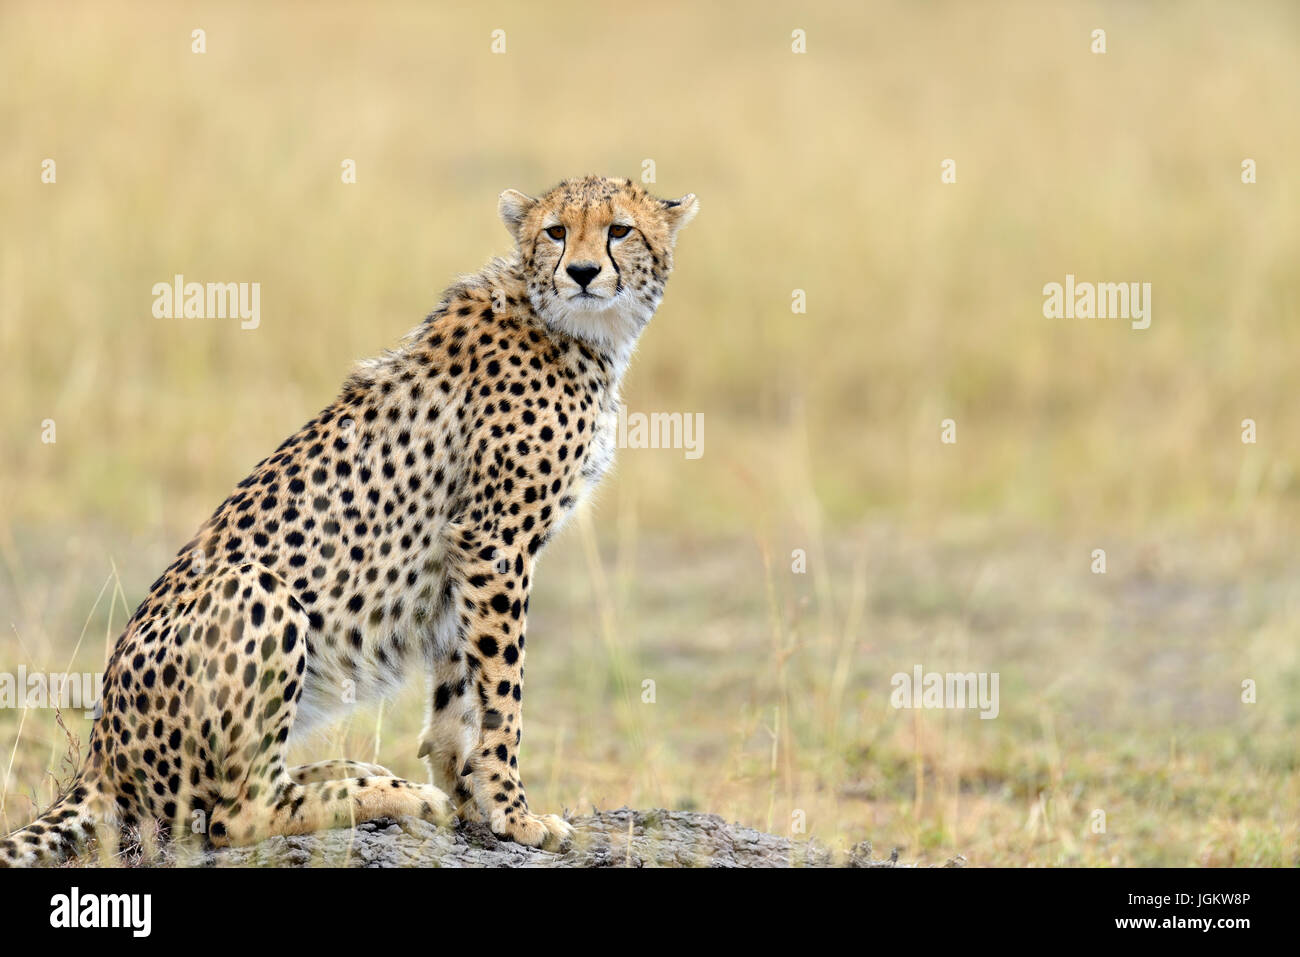 Cheetah on grassland in National park of Africa Stock Photo